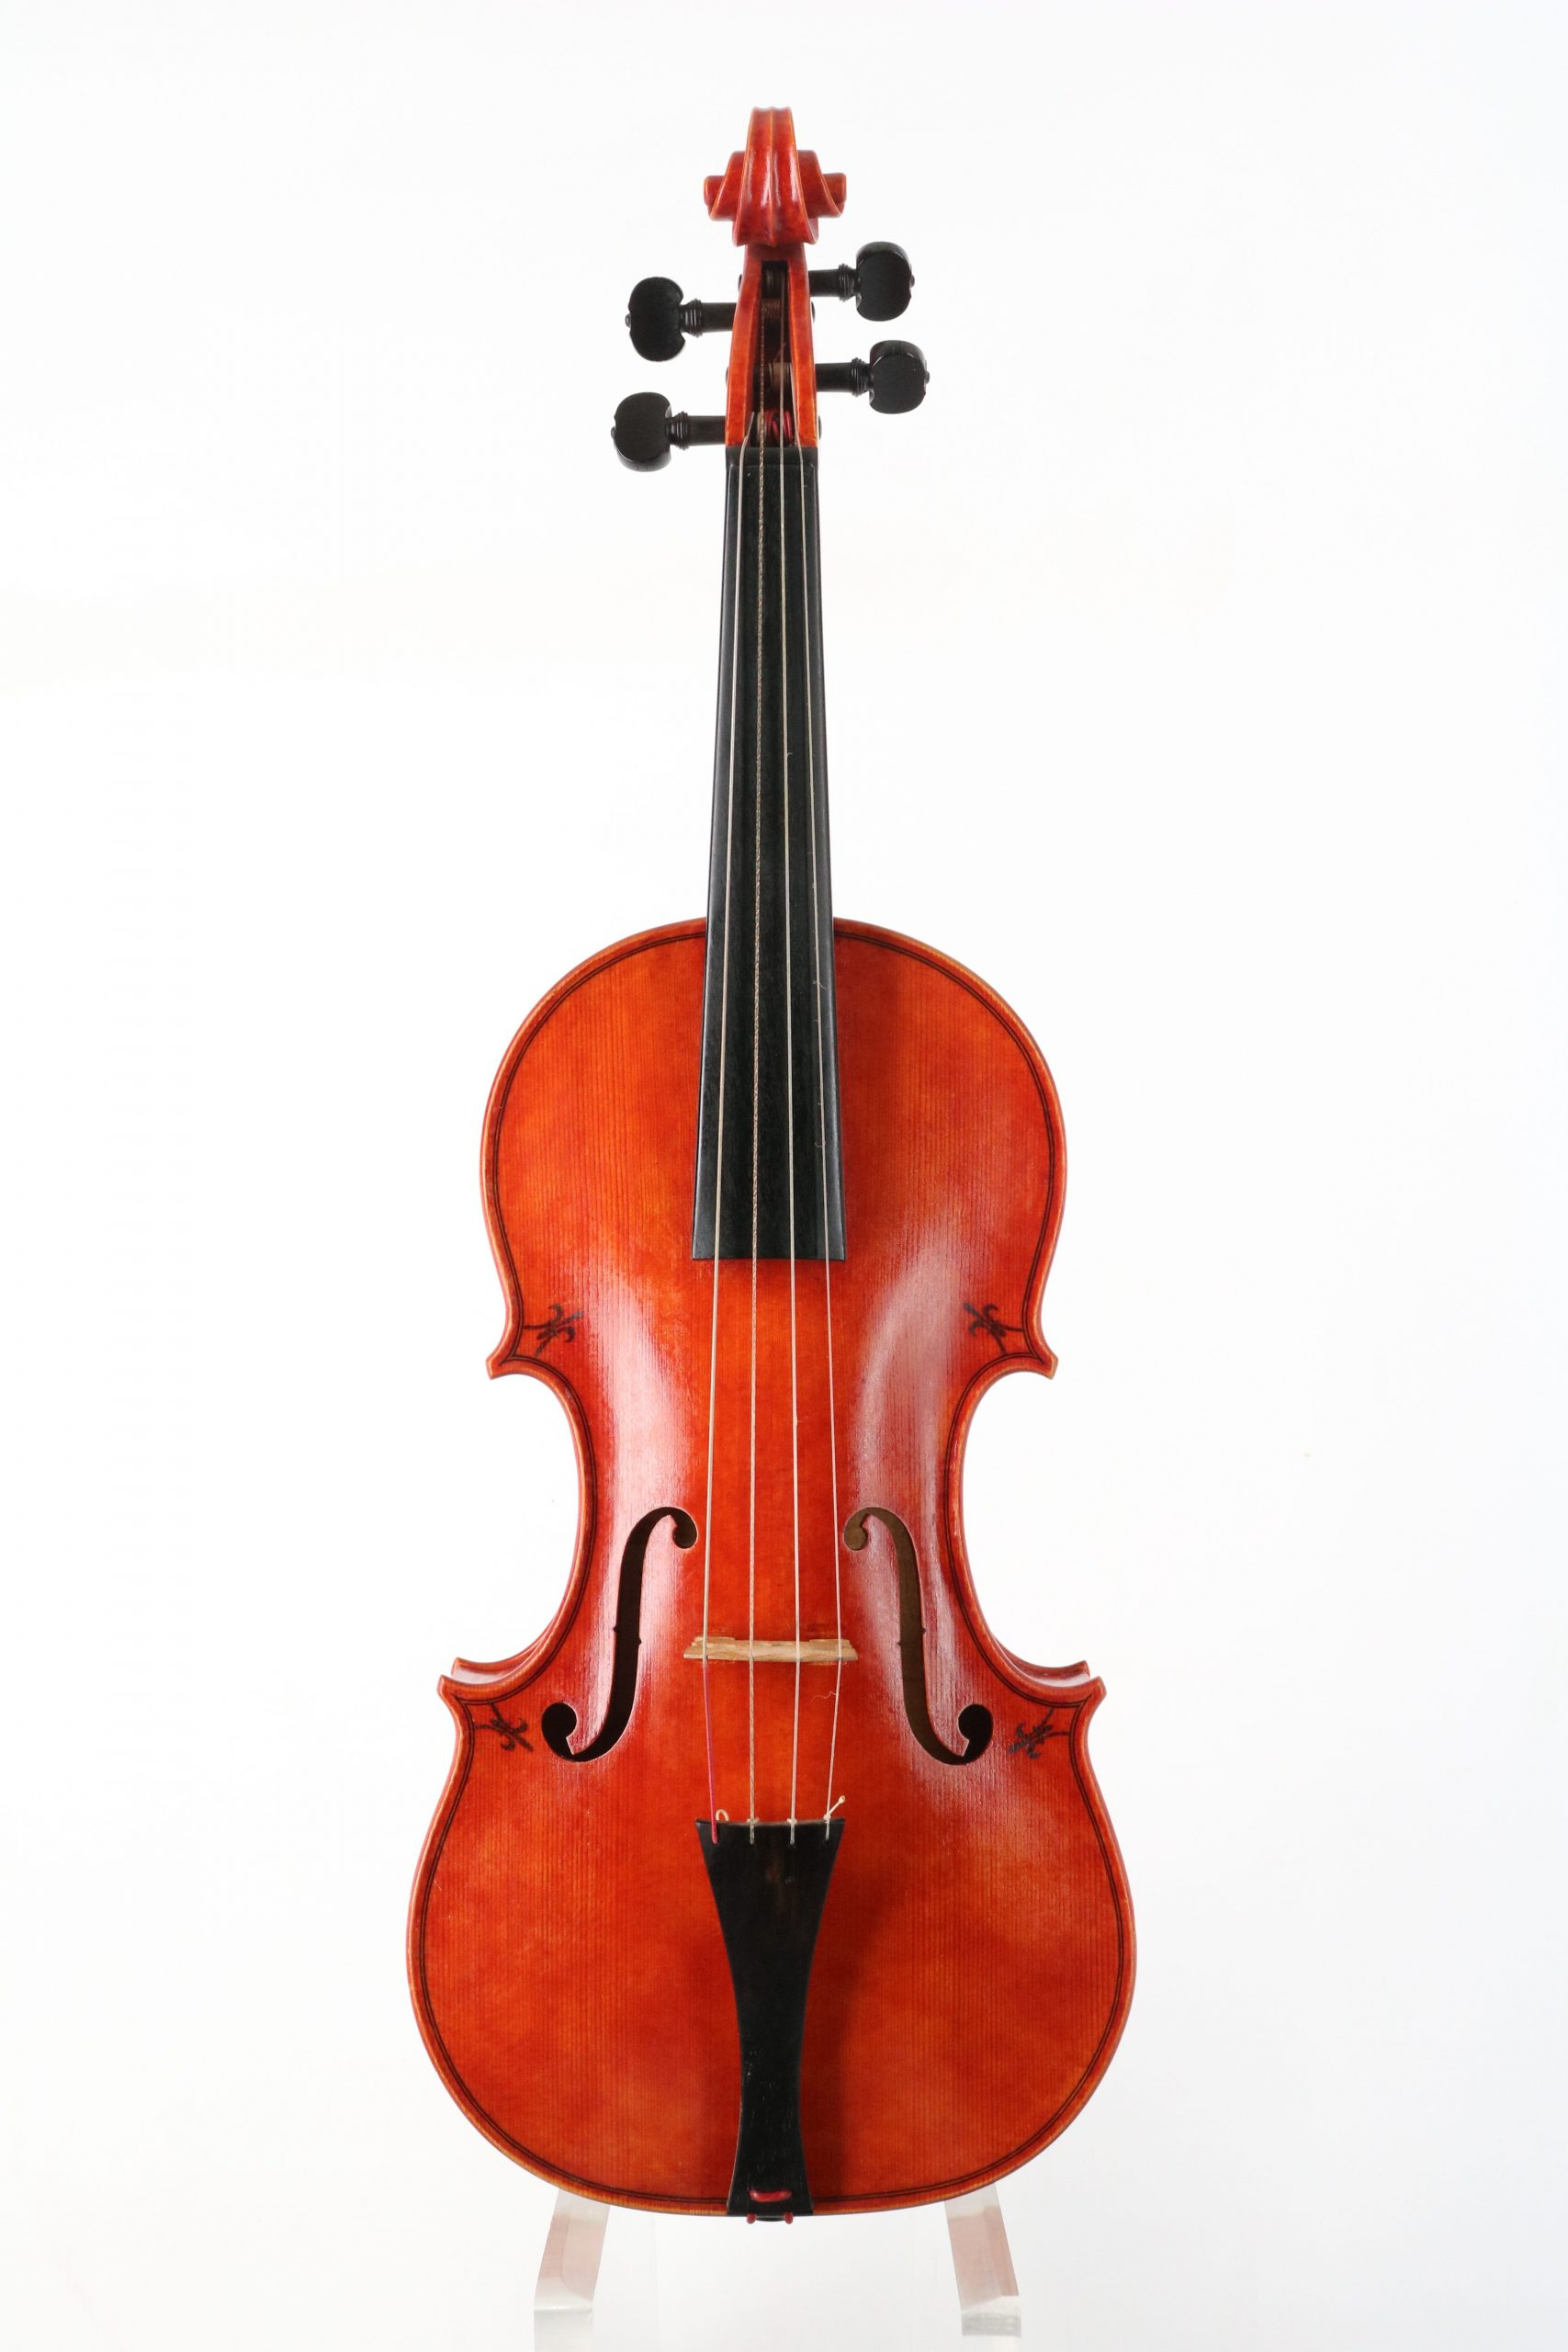 Baroque violin by William Castle for sale at Bridgewood and Neitzert London